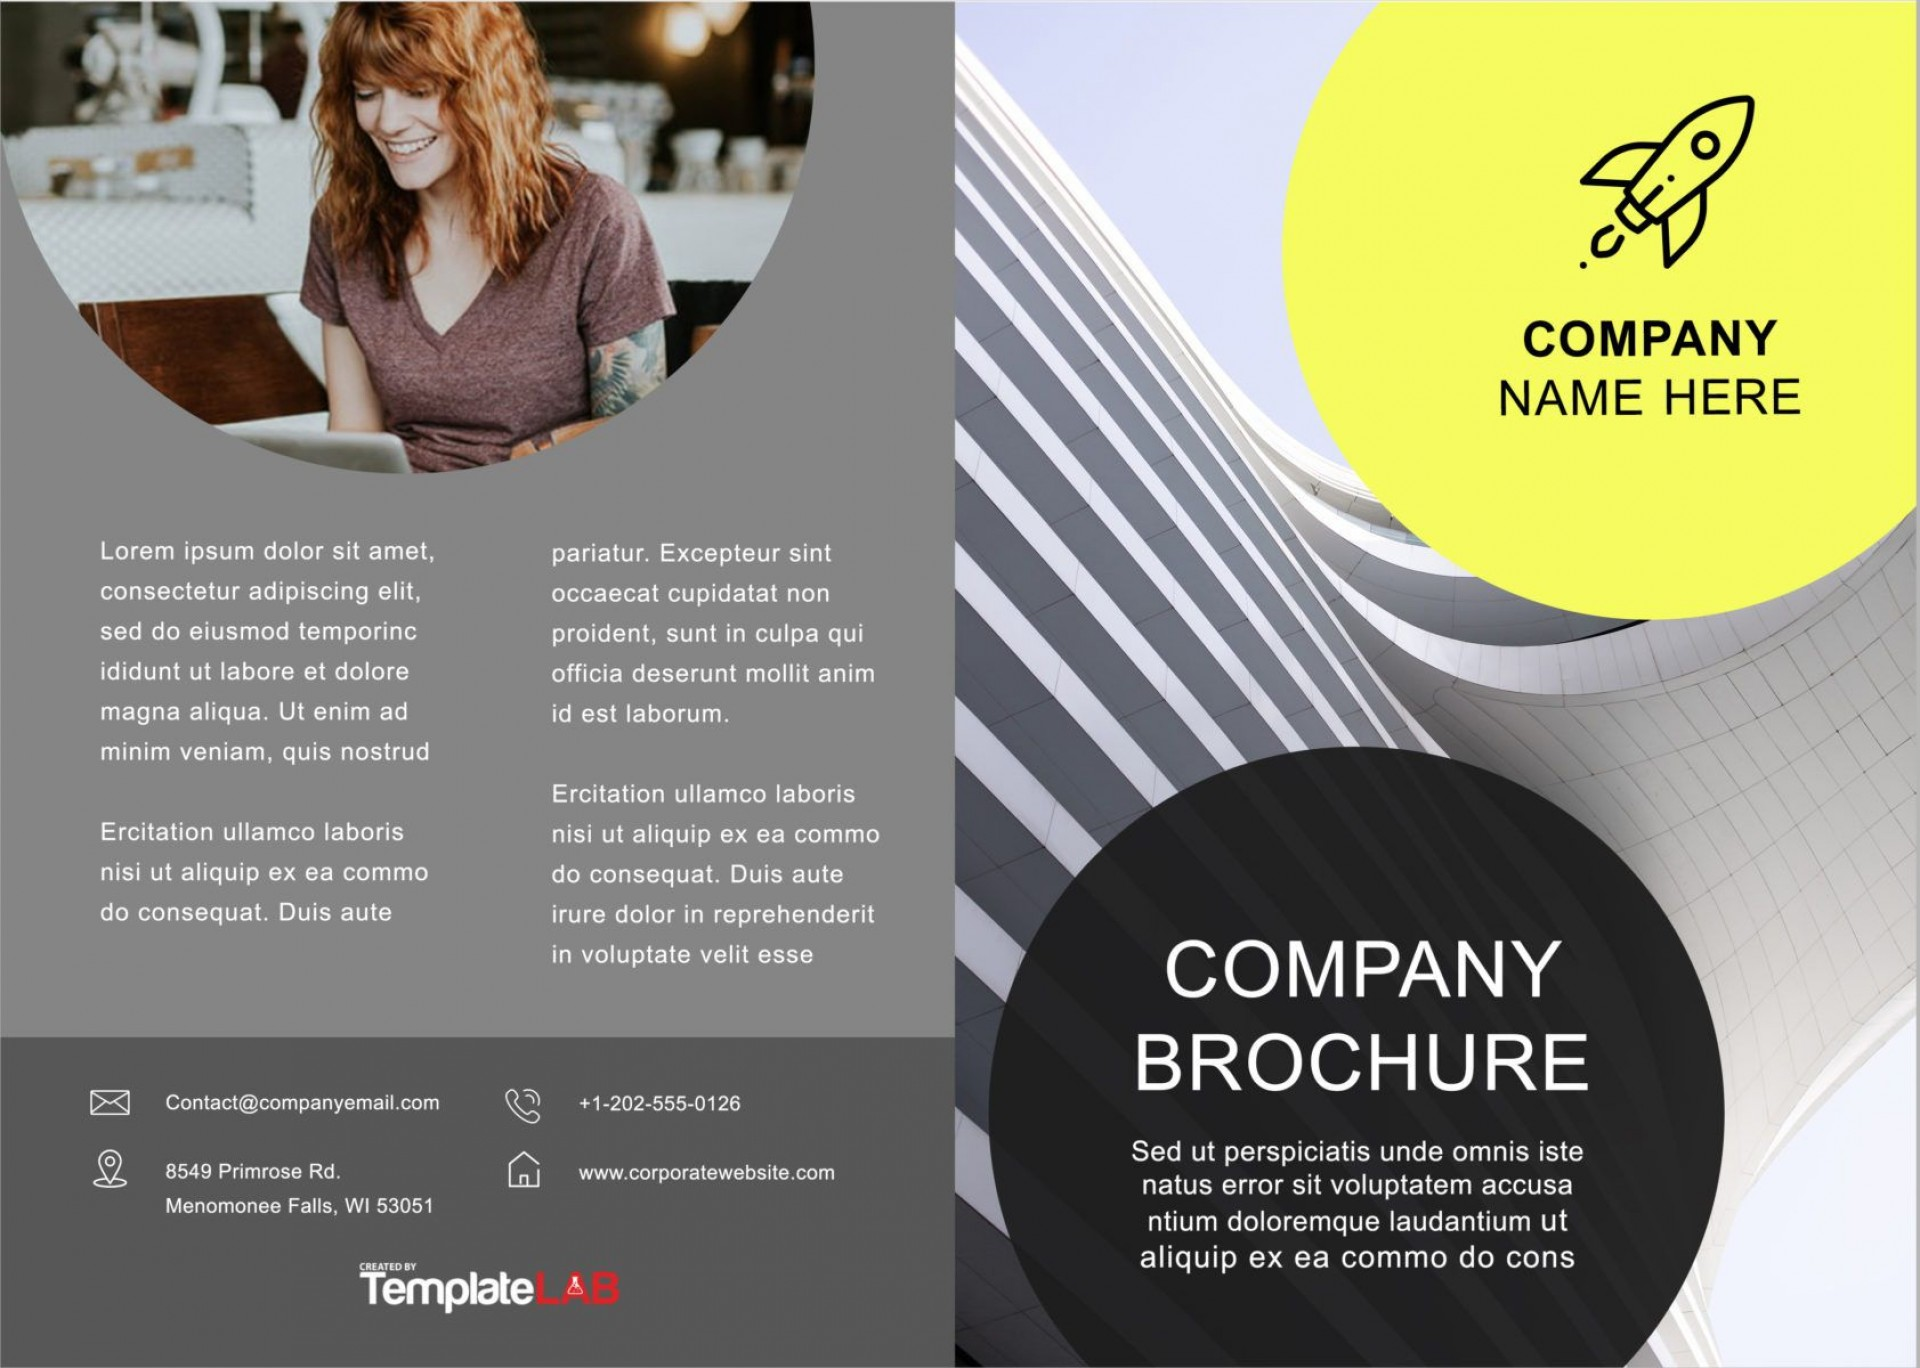 003 Fearsome Microsoft Word Brochure Template Photo  Templates 2010 Tri Fold A4 2007 Free Download1920